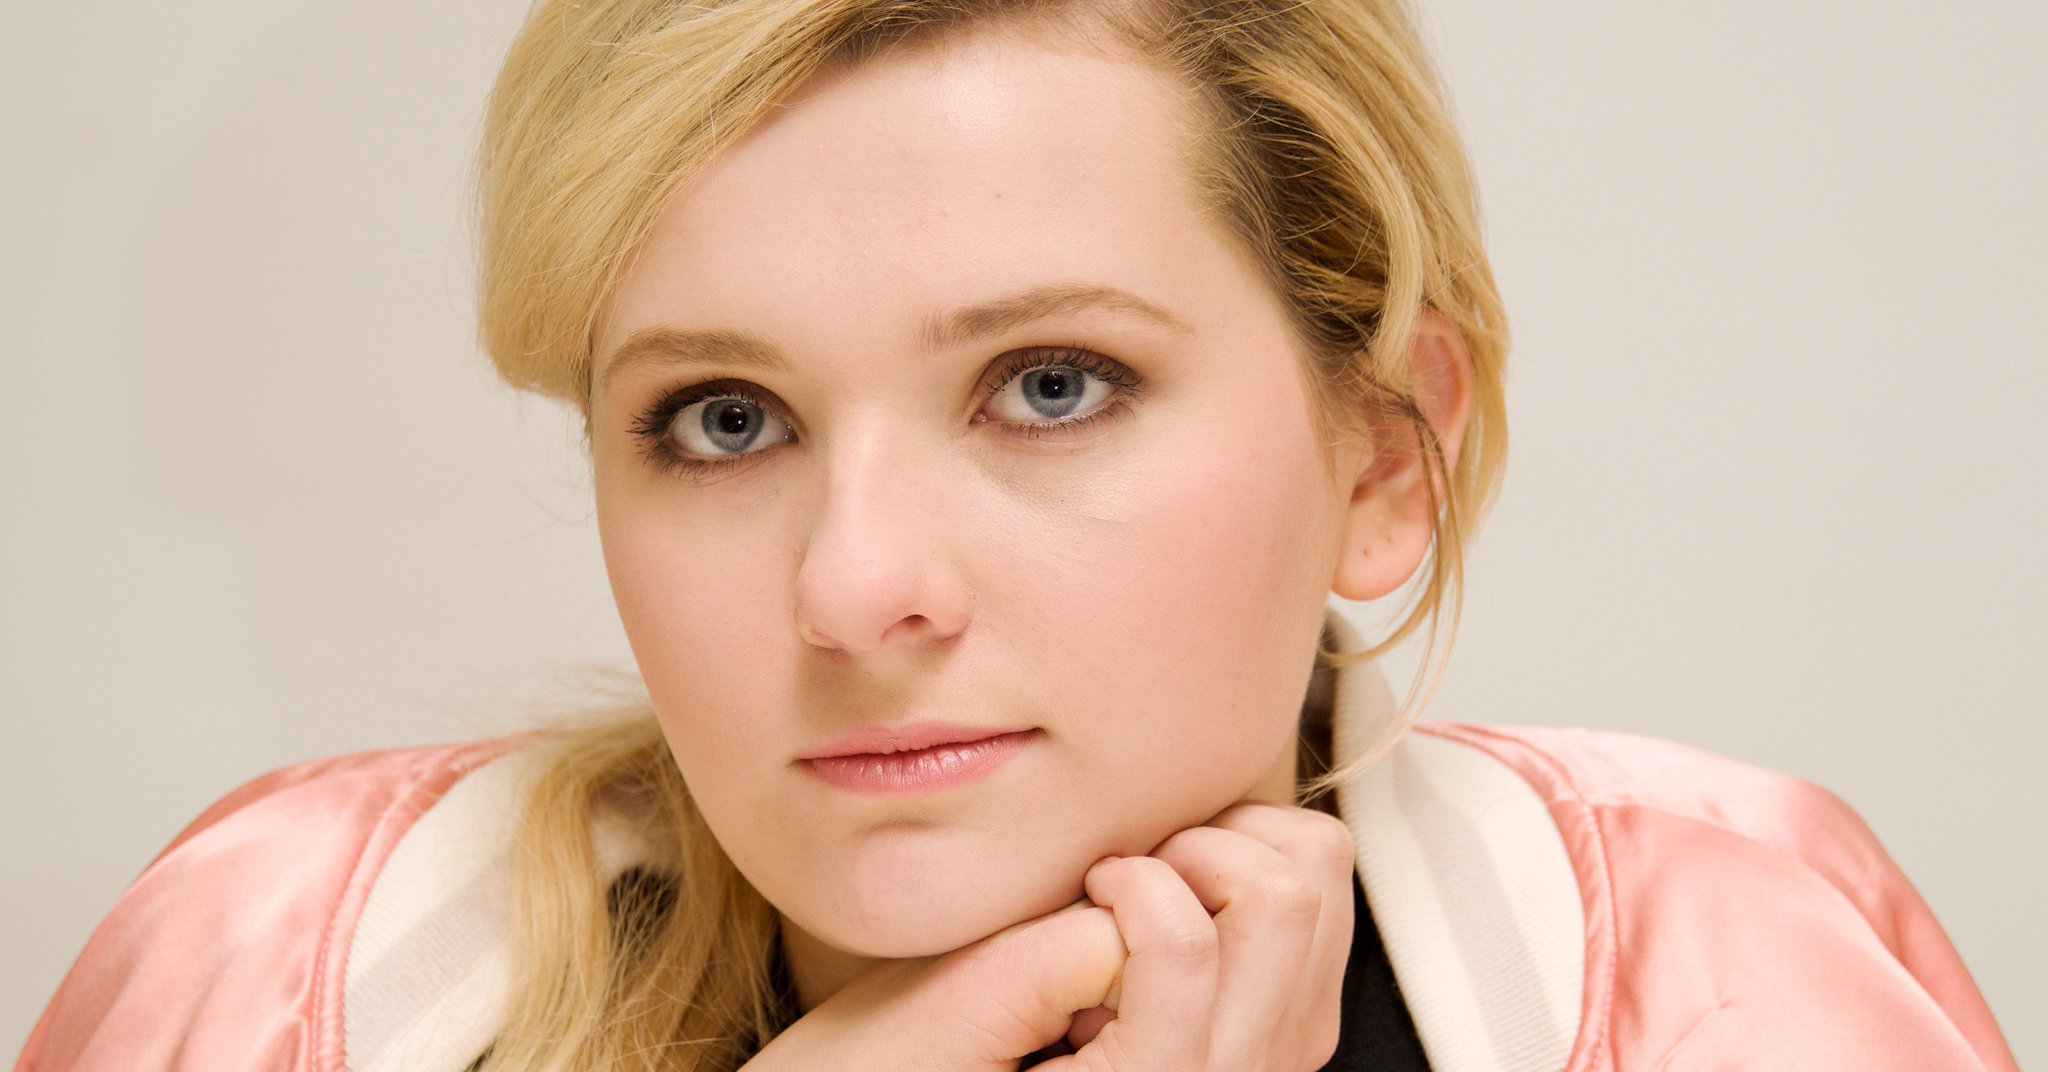 Abigail Breslin opens up about experiencing PTSD after sexual assault and domestic violence: https://t.co/sksDsa47Ir https://t.co/2ulVmoIZF5